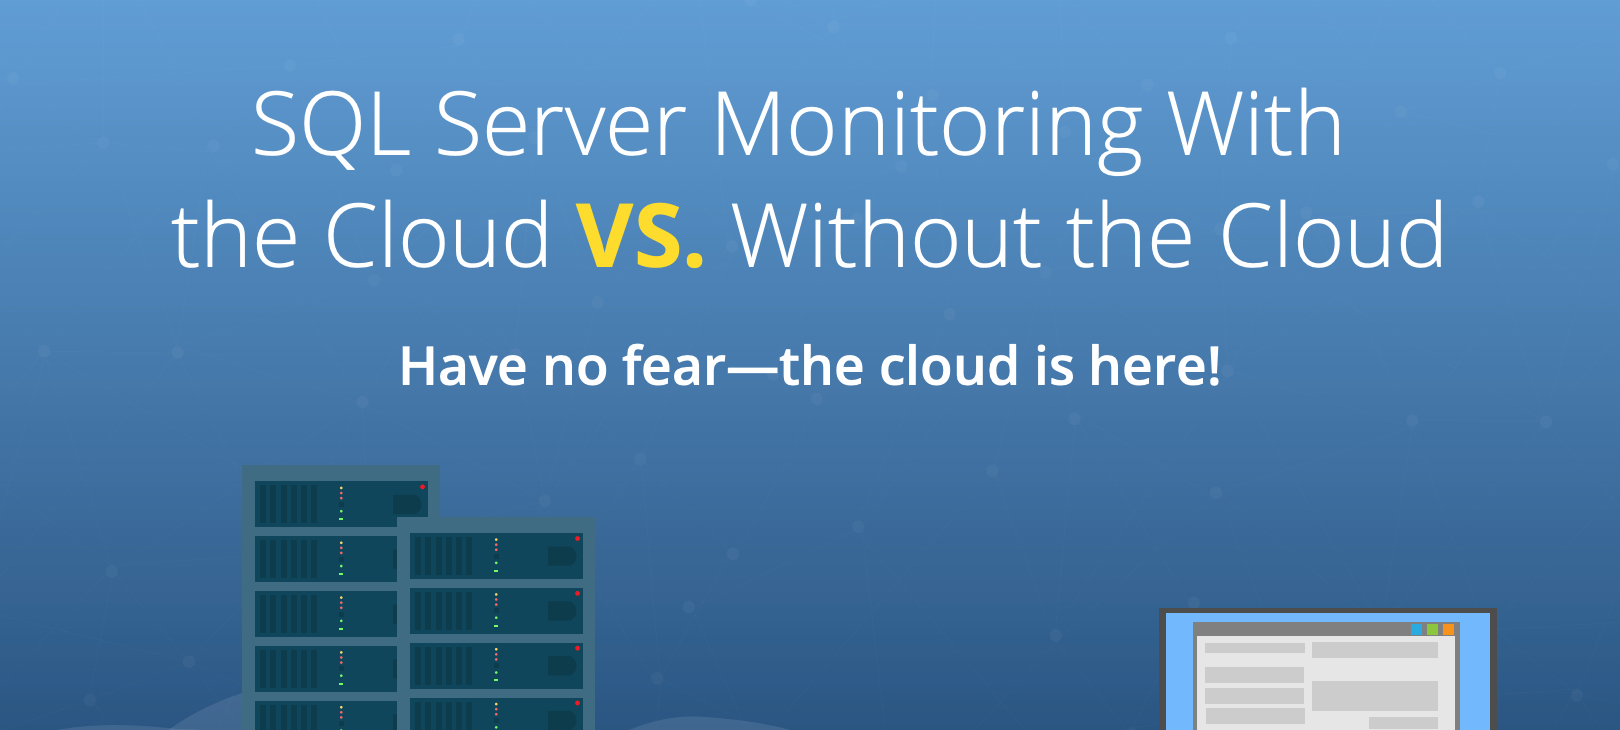 SC-_SQL_Server_Monitoring_With_the_Cloud_vs__Without_the_Cloud-V5-1